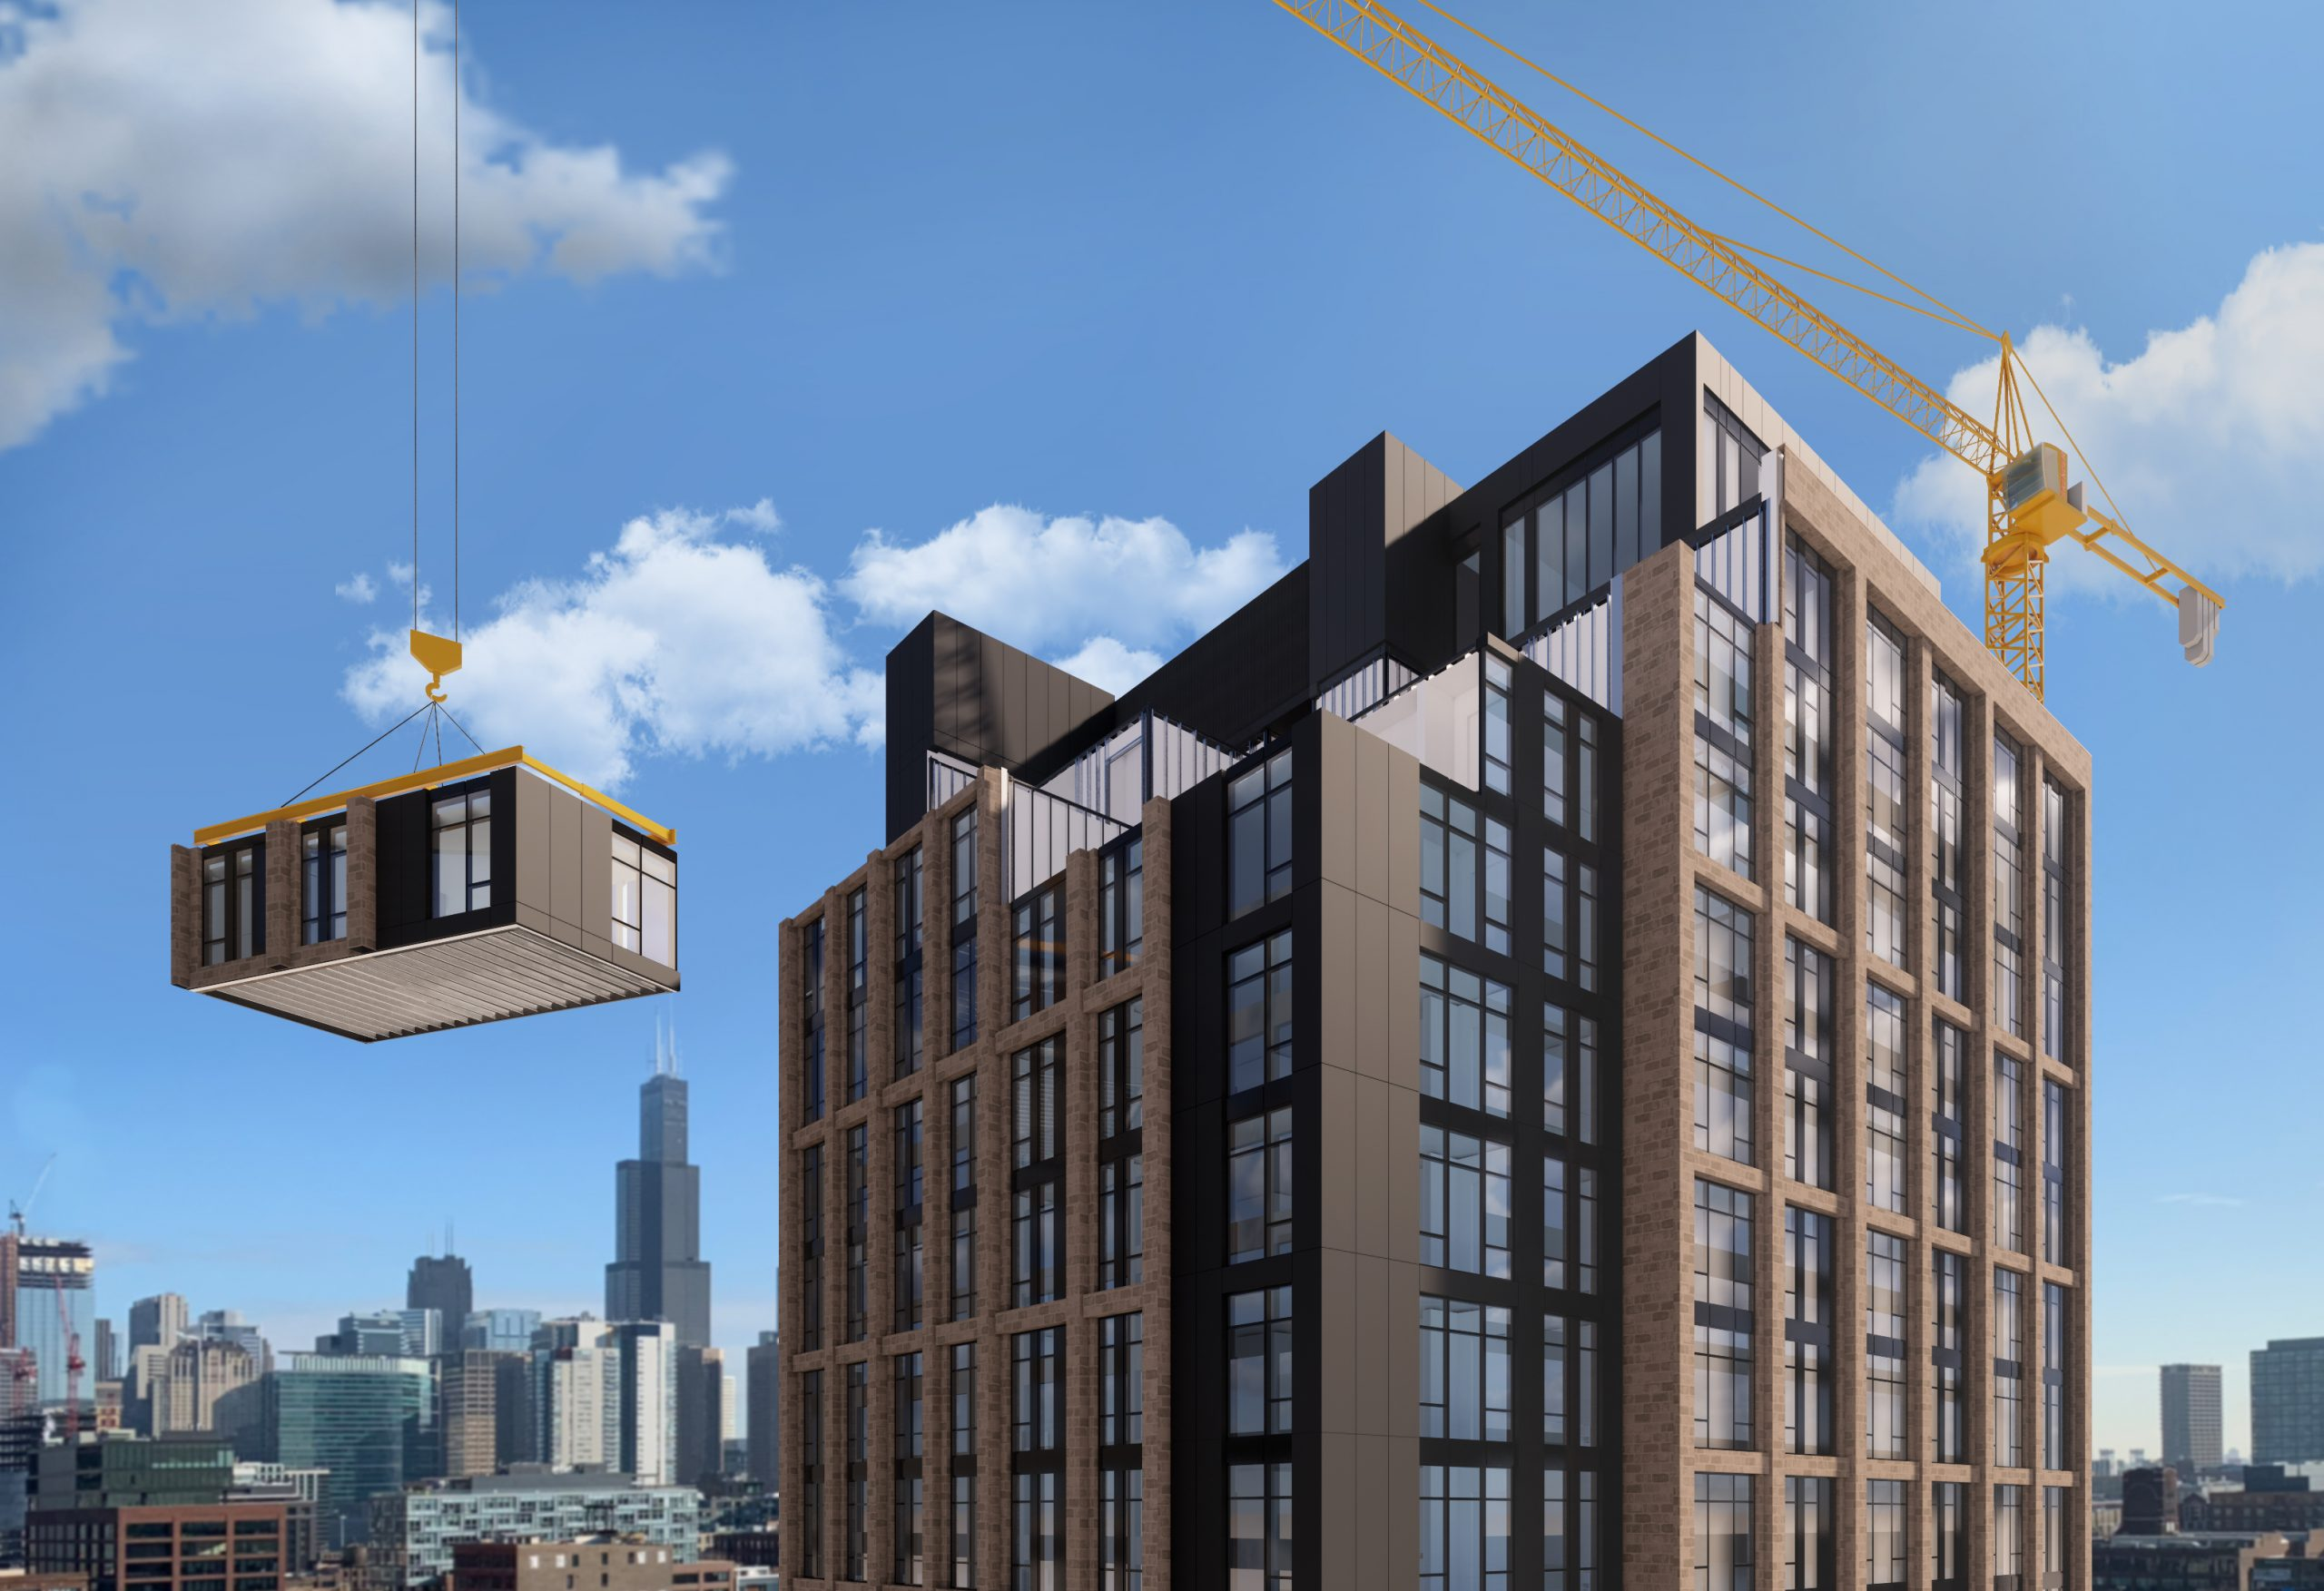 Major Growth Expected for Prefabrication and Permanent Modular Construction, New Study Finds